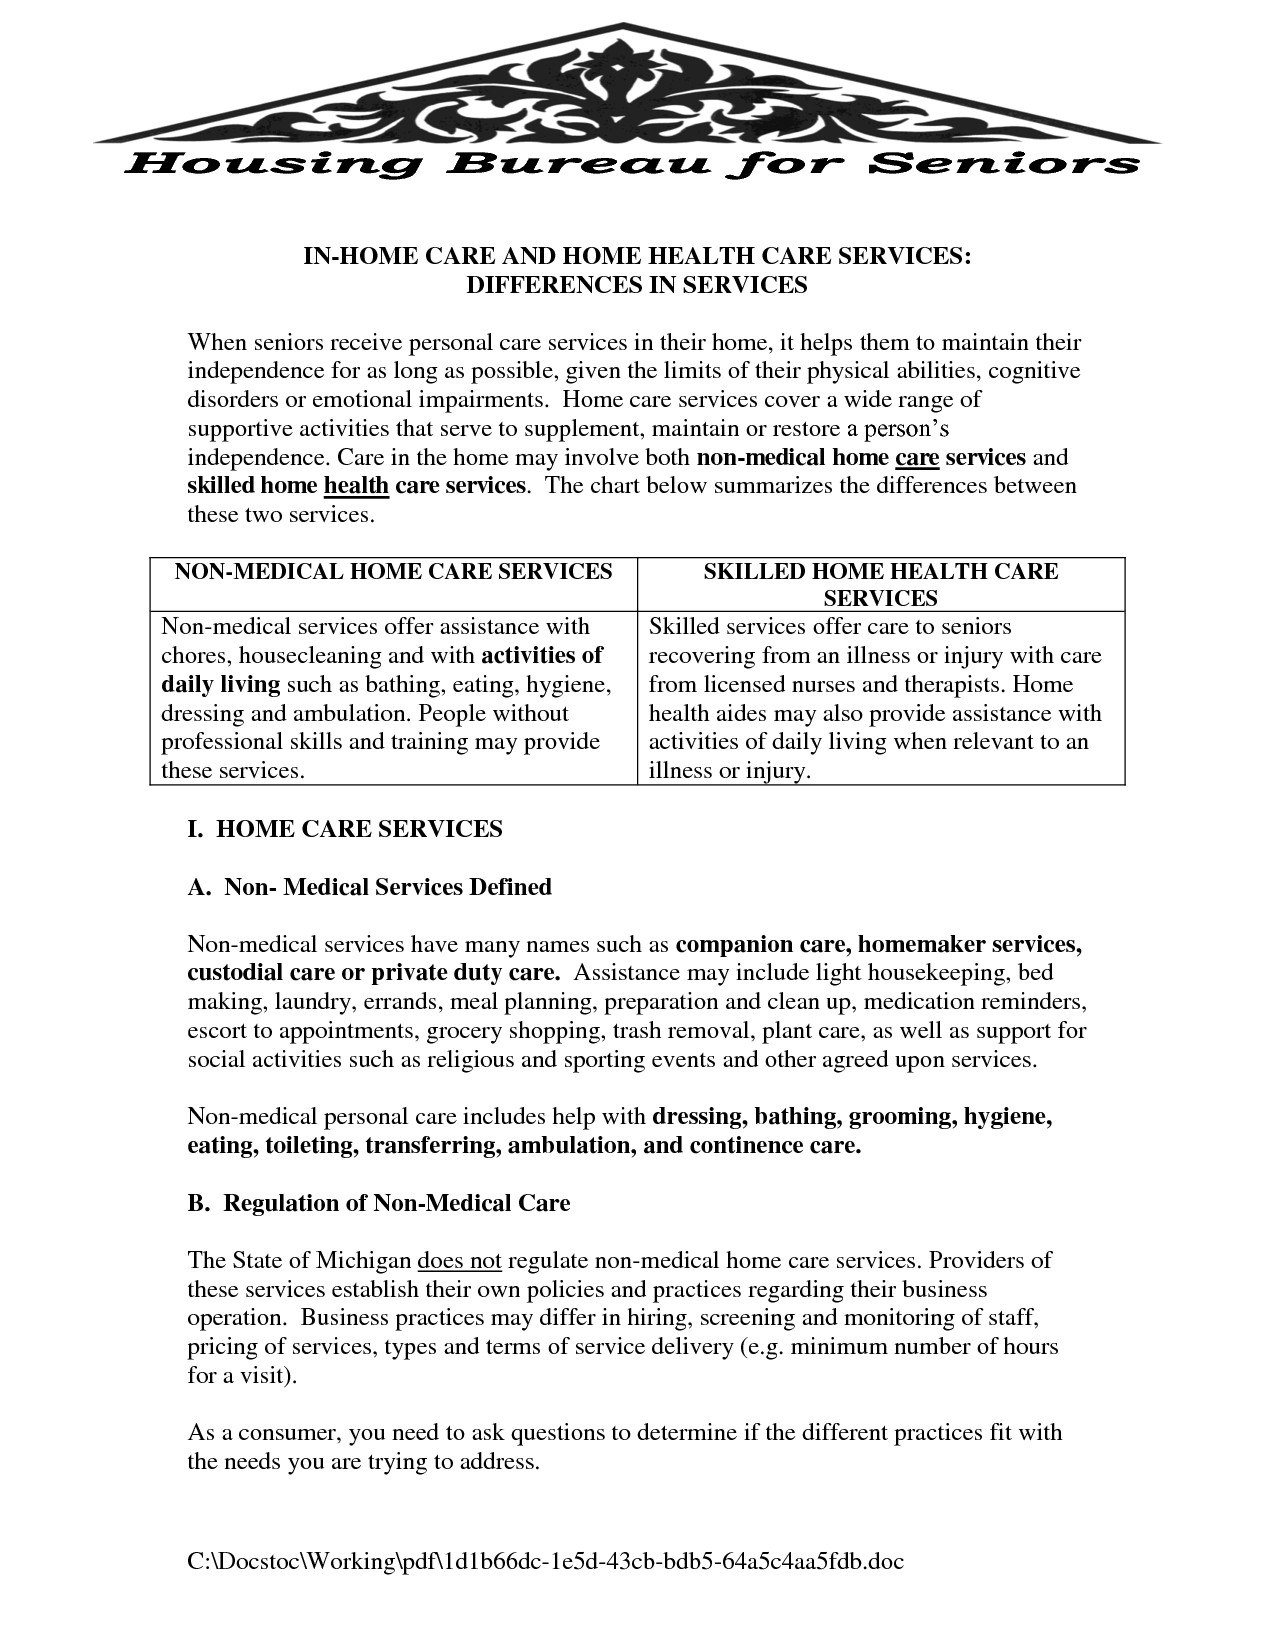 Non Medical Home Care Business Plan Template Sample Fancy Regarding Non Medical Home Care Business Plan Template